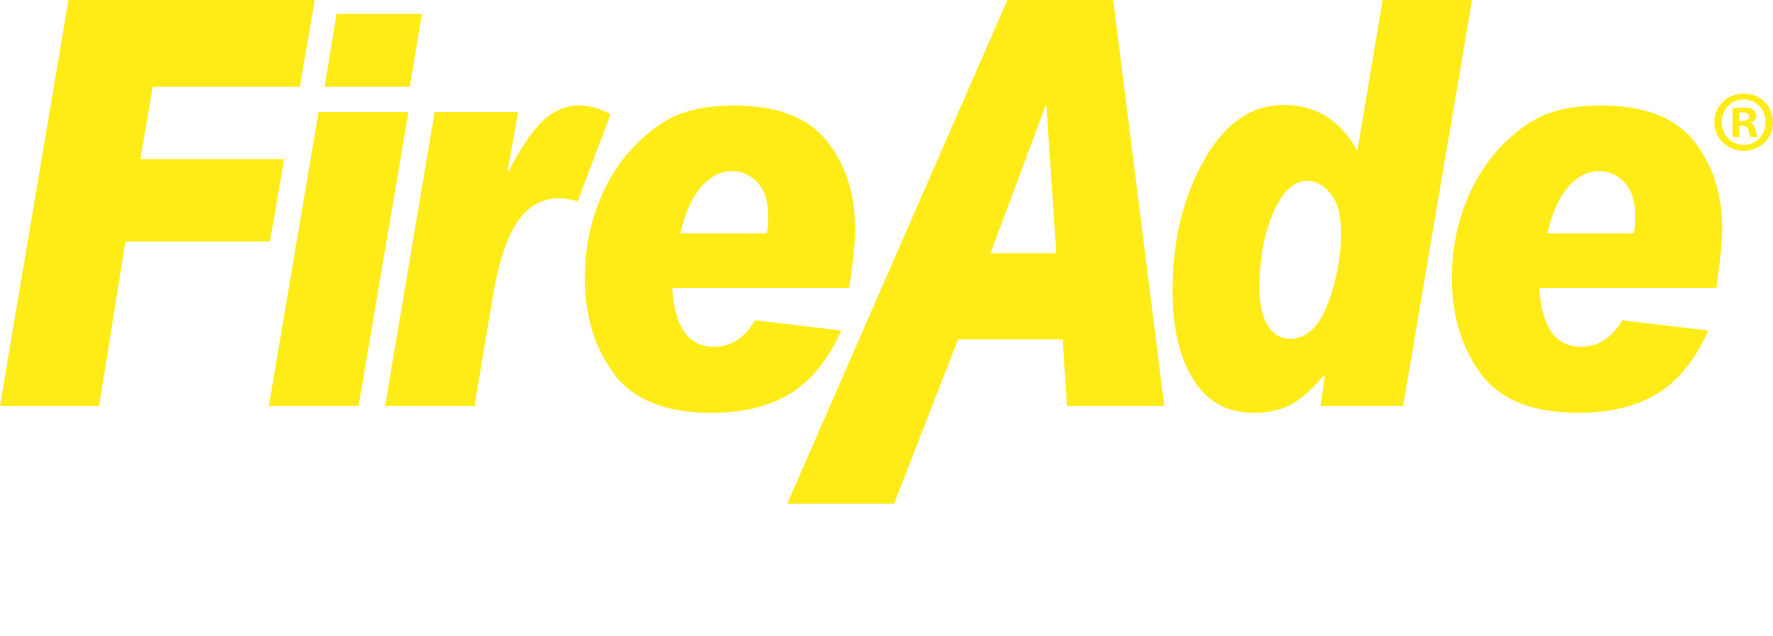 Fireade firefighting Products